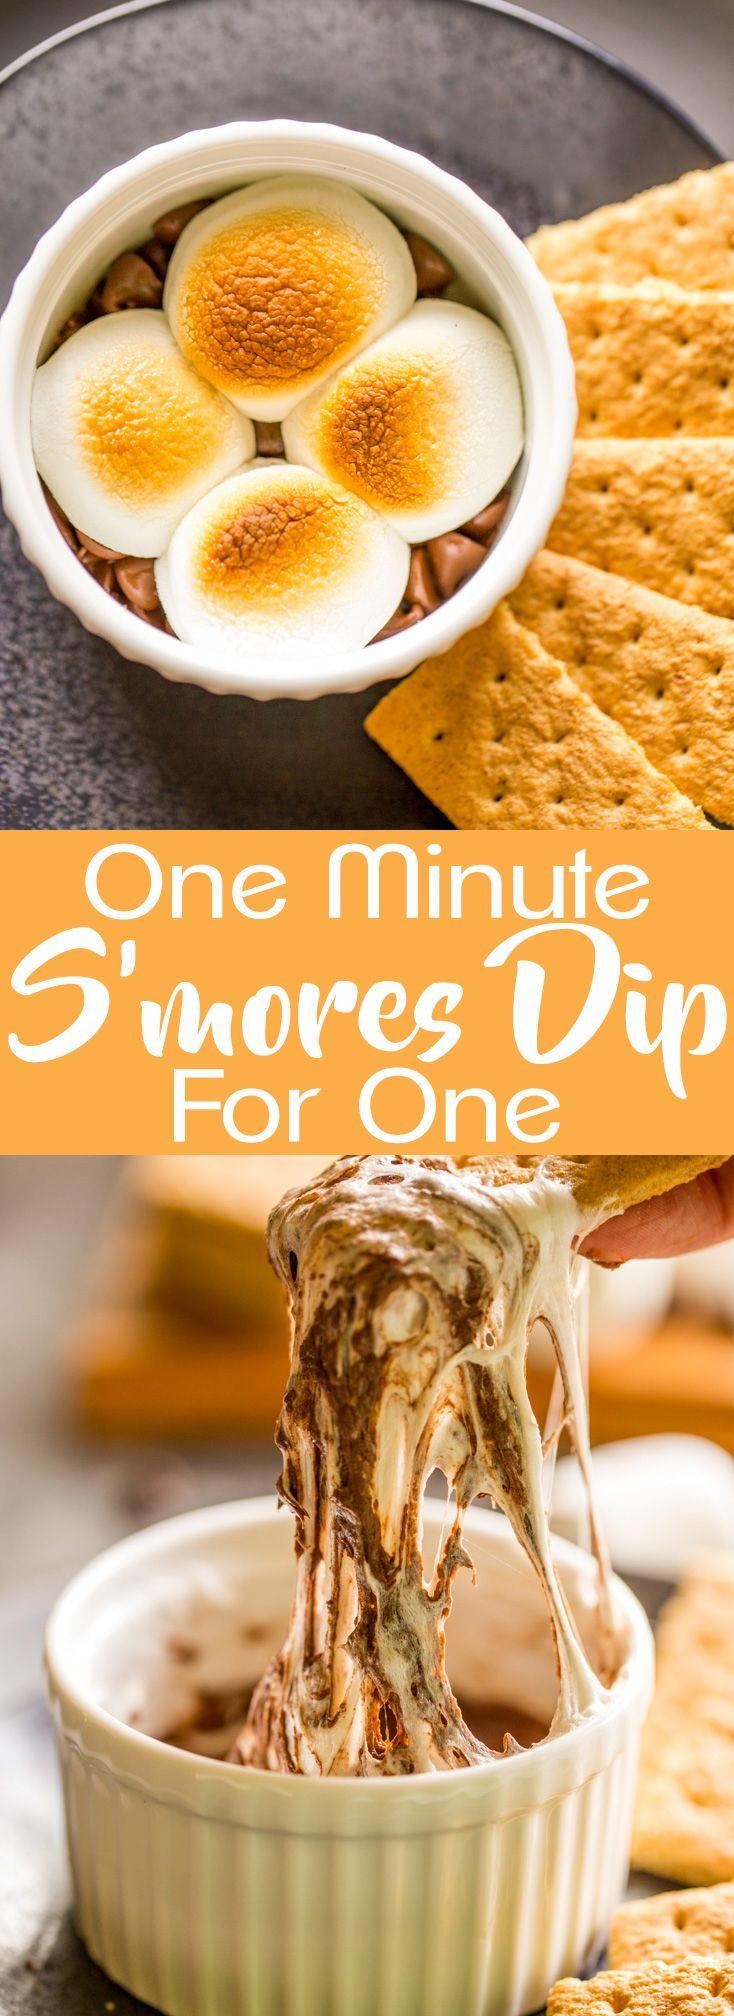 This One Minute S'mores Dip for One is perfect for a late night sweet tooth. Desserts for One   Microwave Desserts   Quick and Easy Desserts   Microwave S'mores   Quick Treats   Chocolate and Marshmallow Dessert